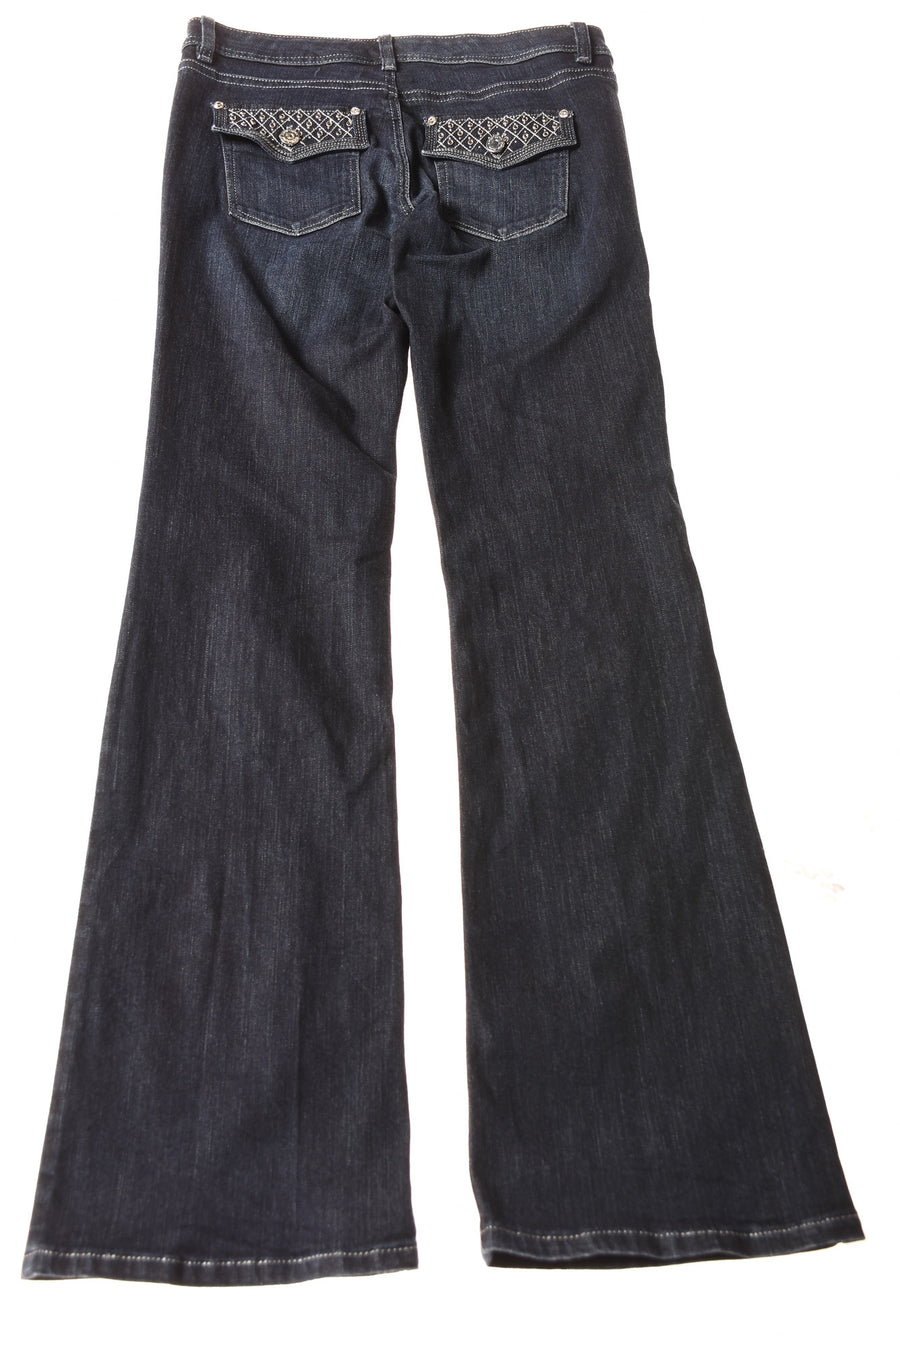 USED White House Black Market Women's Jeans 6 Blue